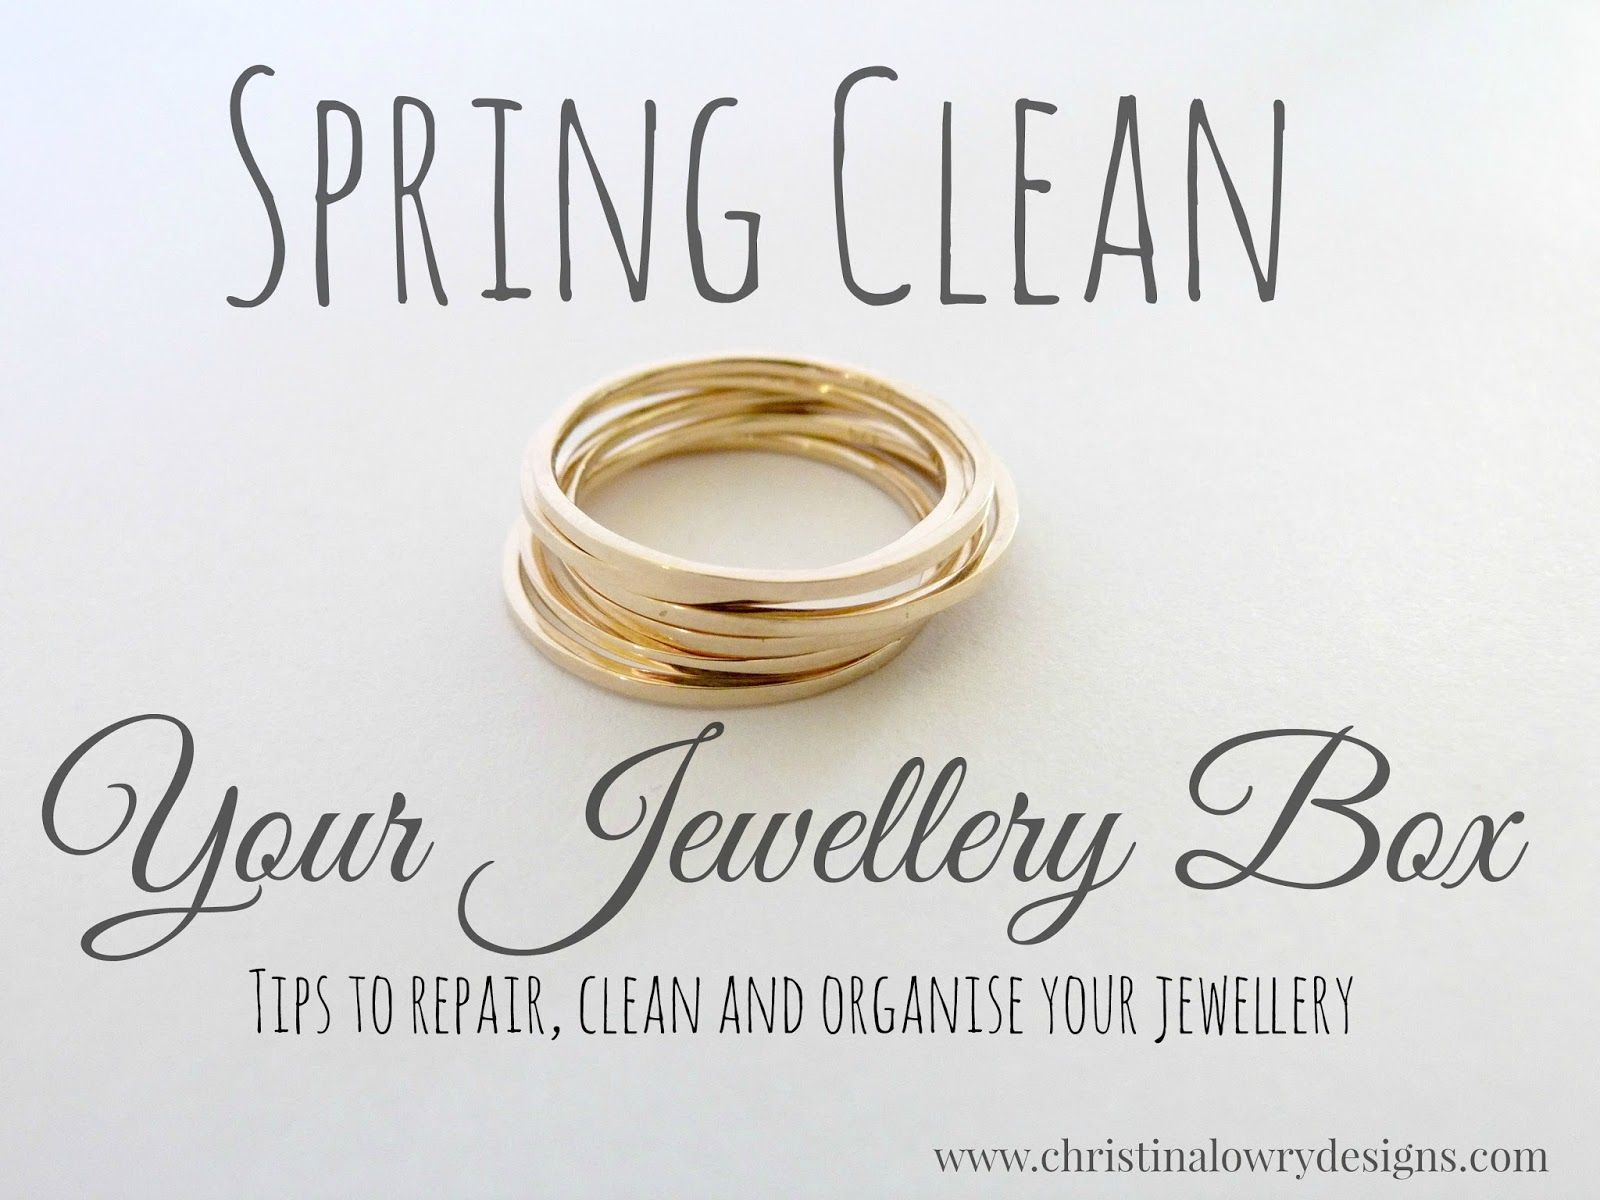 Spring Clean Your Jewellery Box Tips to repair clean and organise